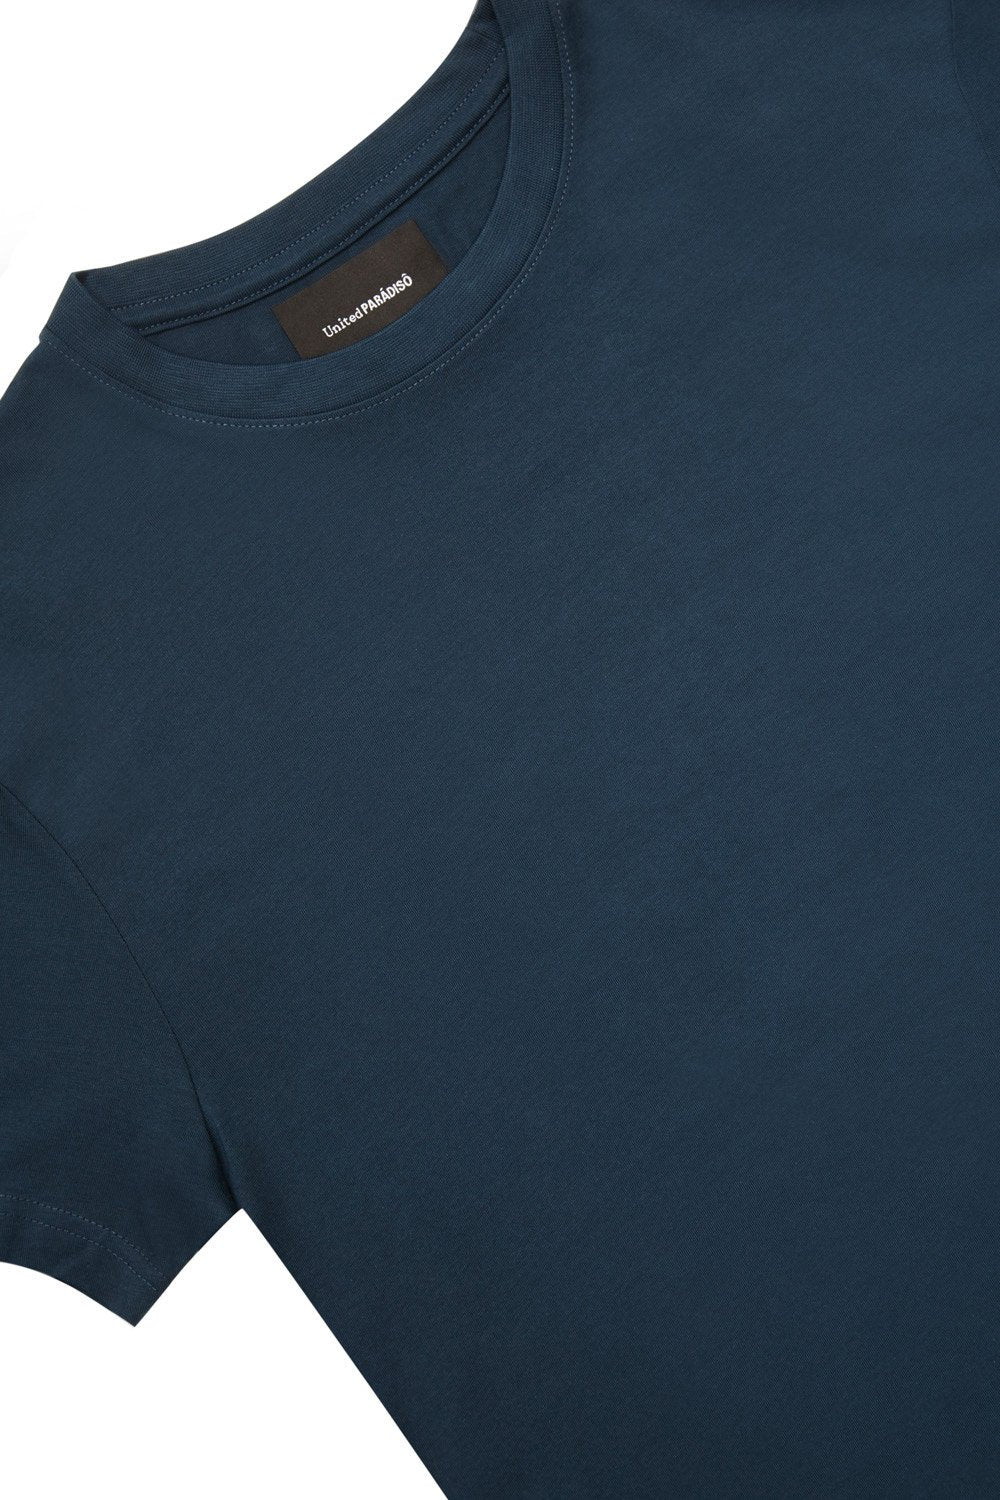 Load image into Gallery viewer, Paradiso Navy Crested Short-Sleeved Supima T-Shirt Front Detail